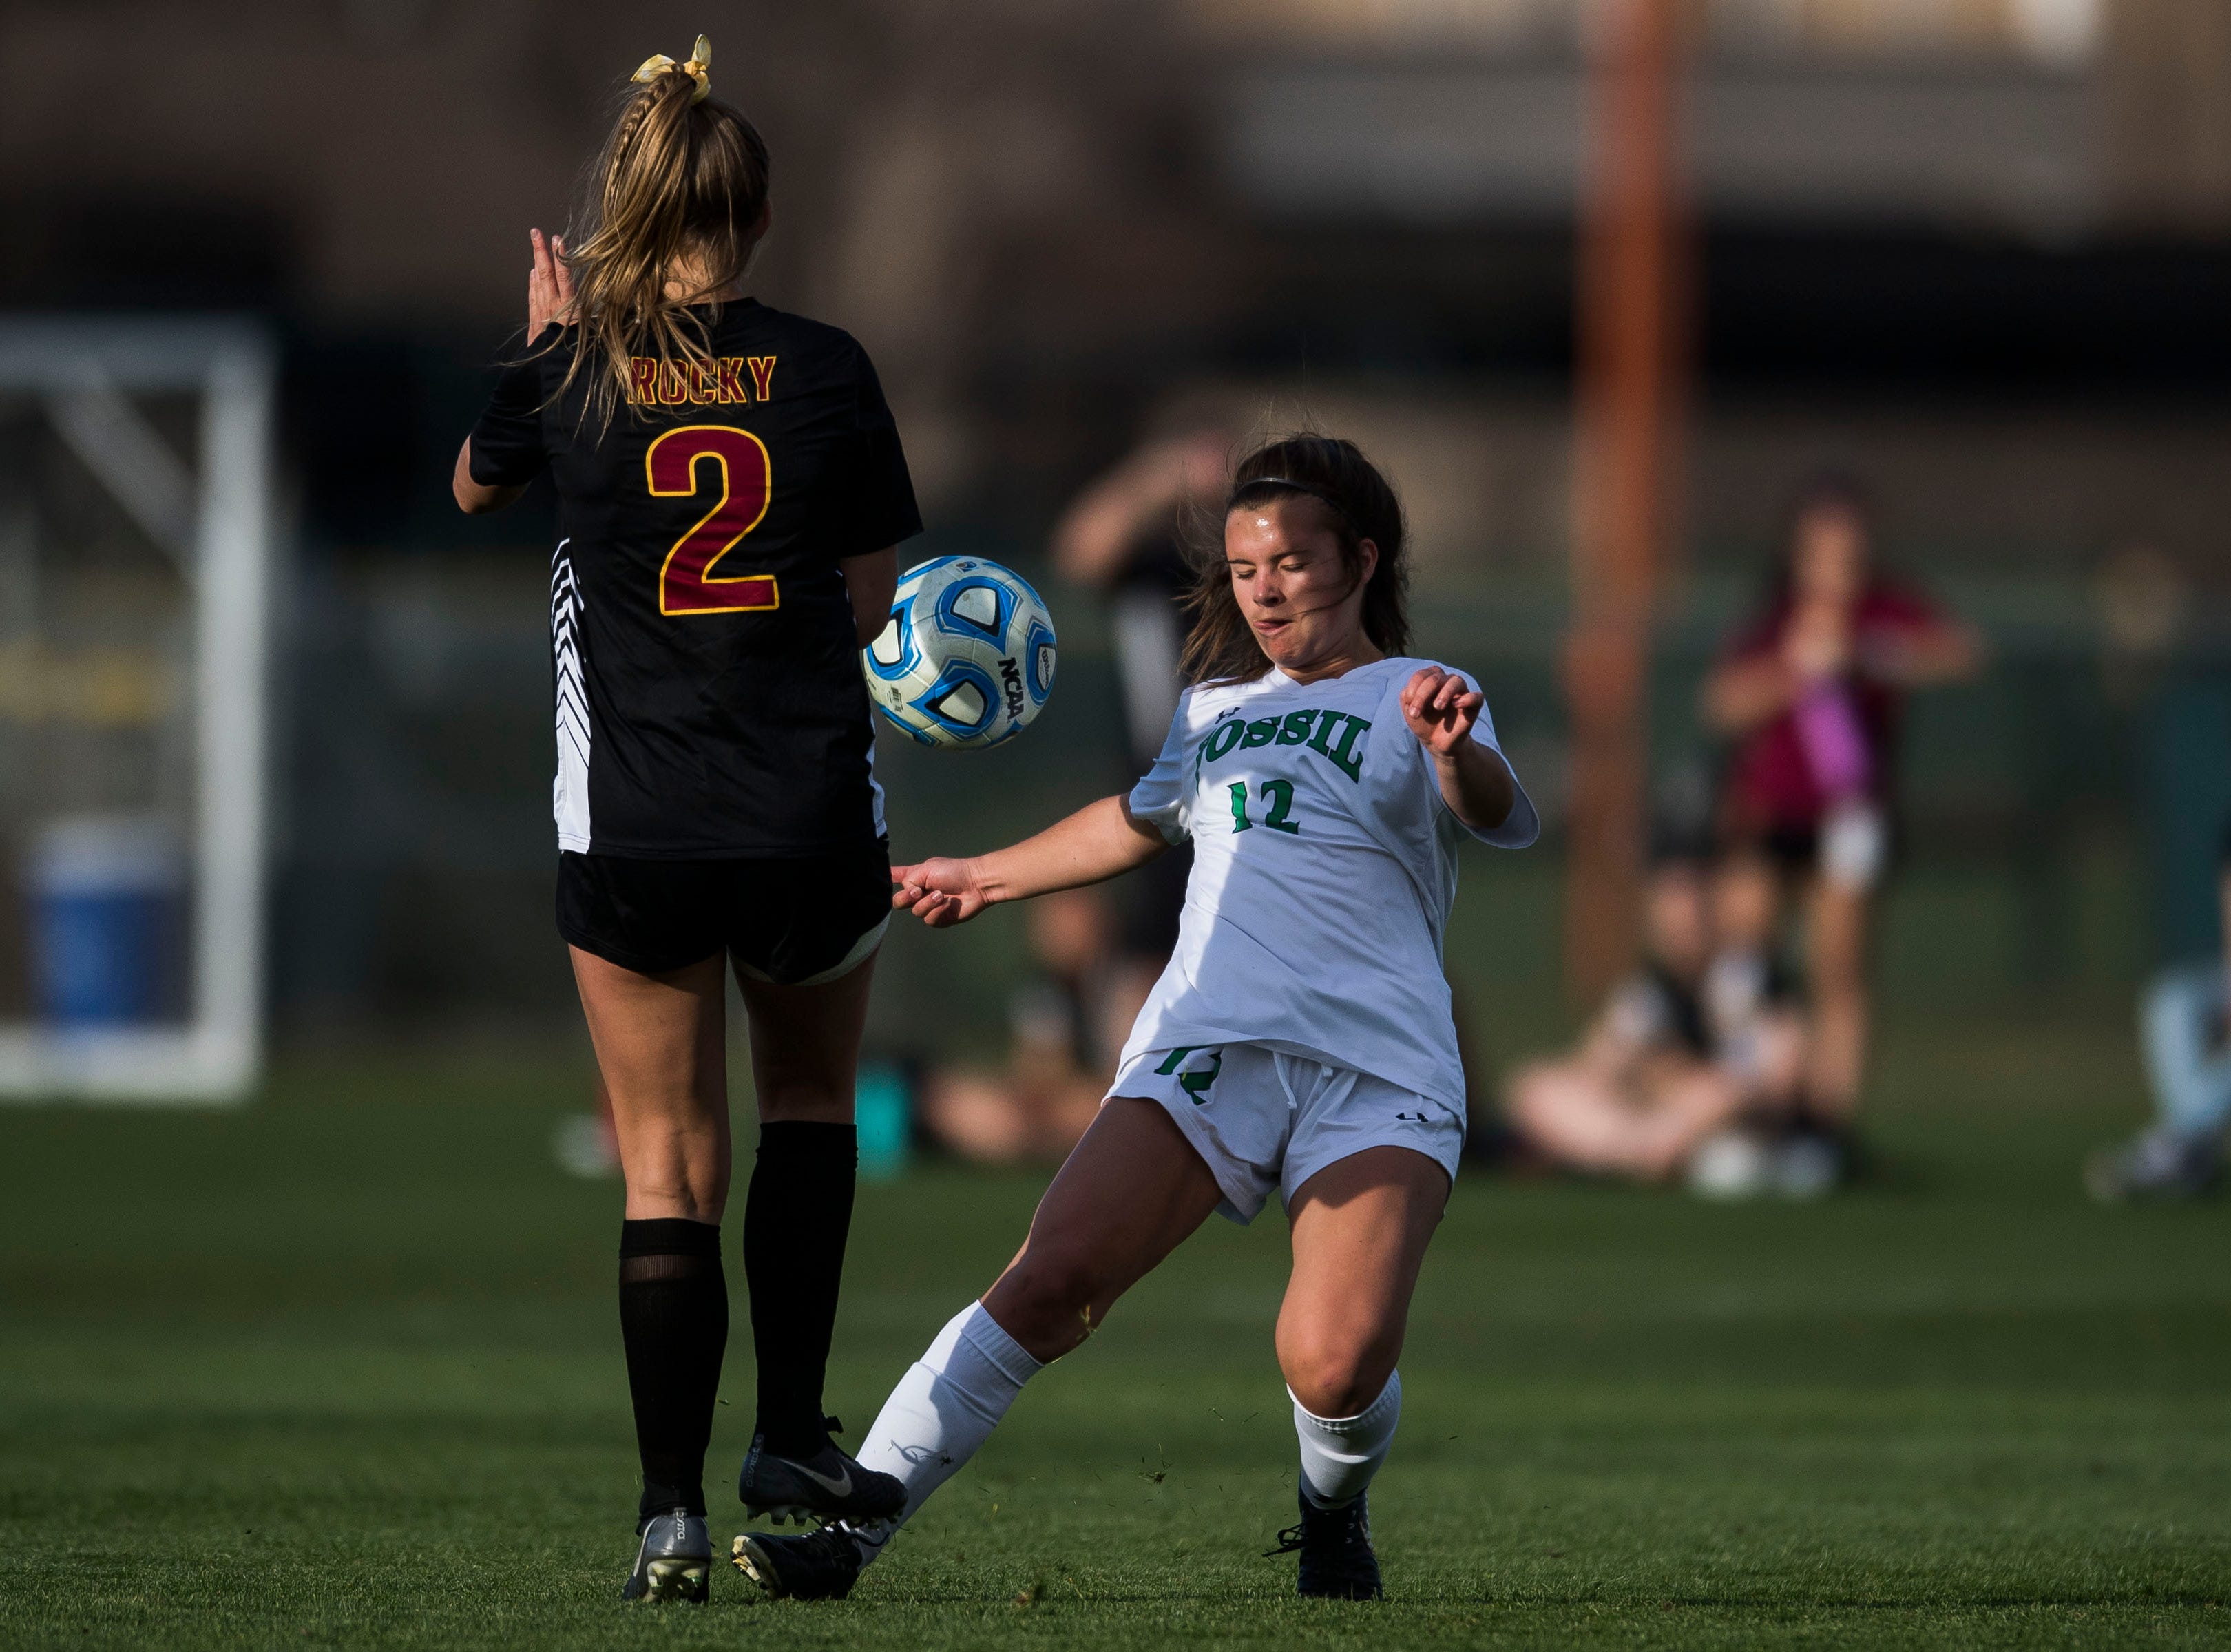 Fossil Ridge High School sophomore Kaitlyn Rogers (12) kicks a ball past Rocky Mountain High School senior Regan Ostler (2) on Friday, April 4, 2019, at Colorado State University's soccer field in Fort Collins, Colo.